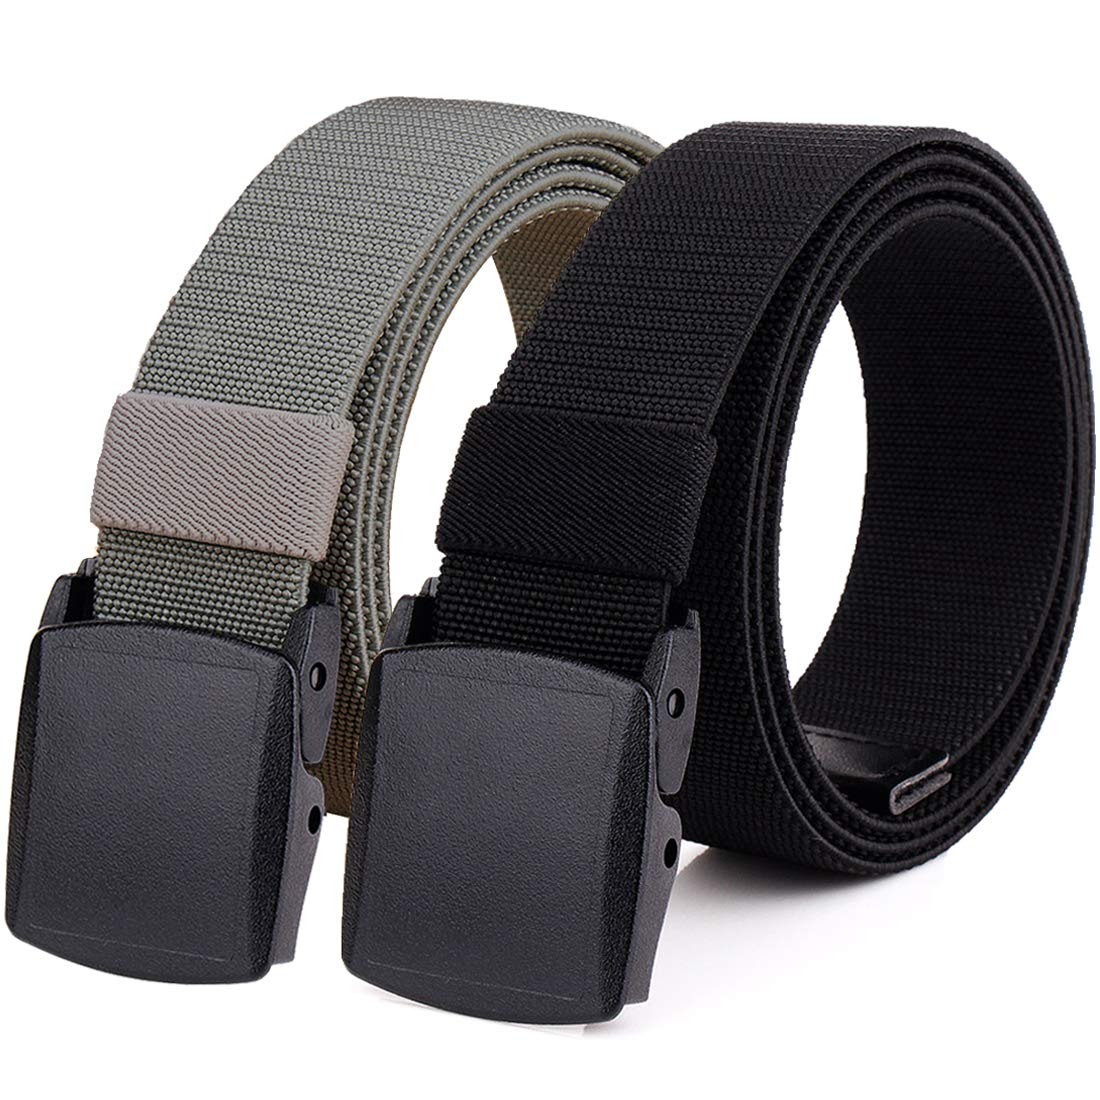 Hoanan 2-Pack Elastic Stretch Belt, Men's Plus Size No Metal Nylon Tactical Hiking Belt(black/grey-up to 50'')